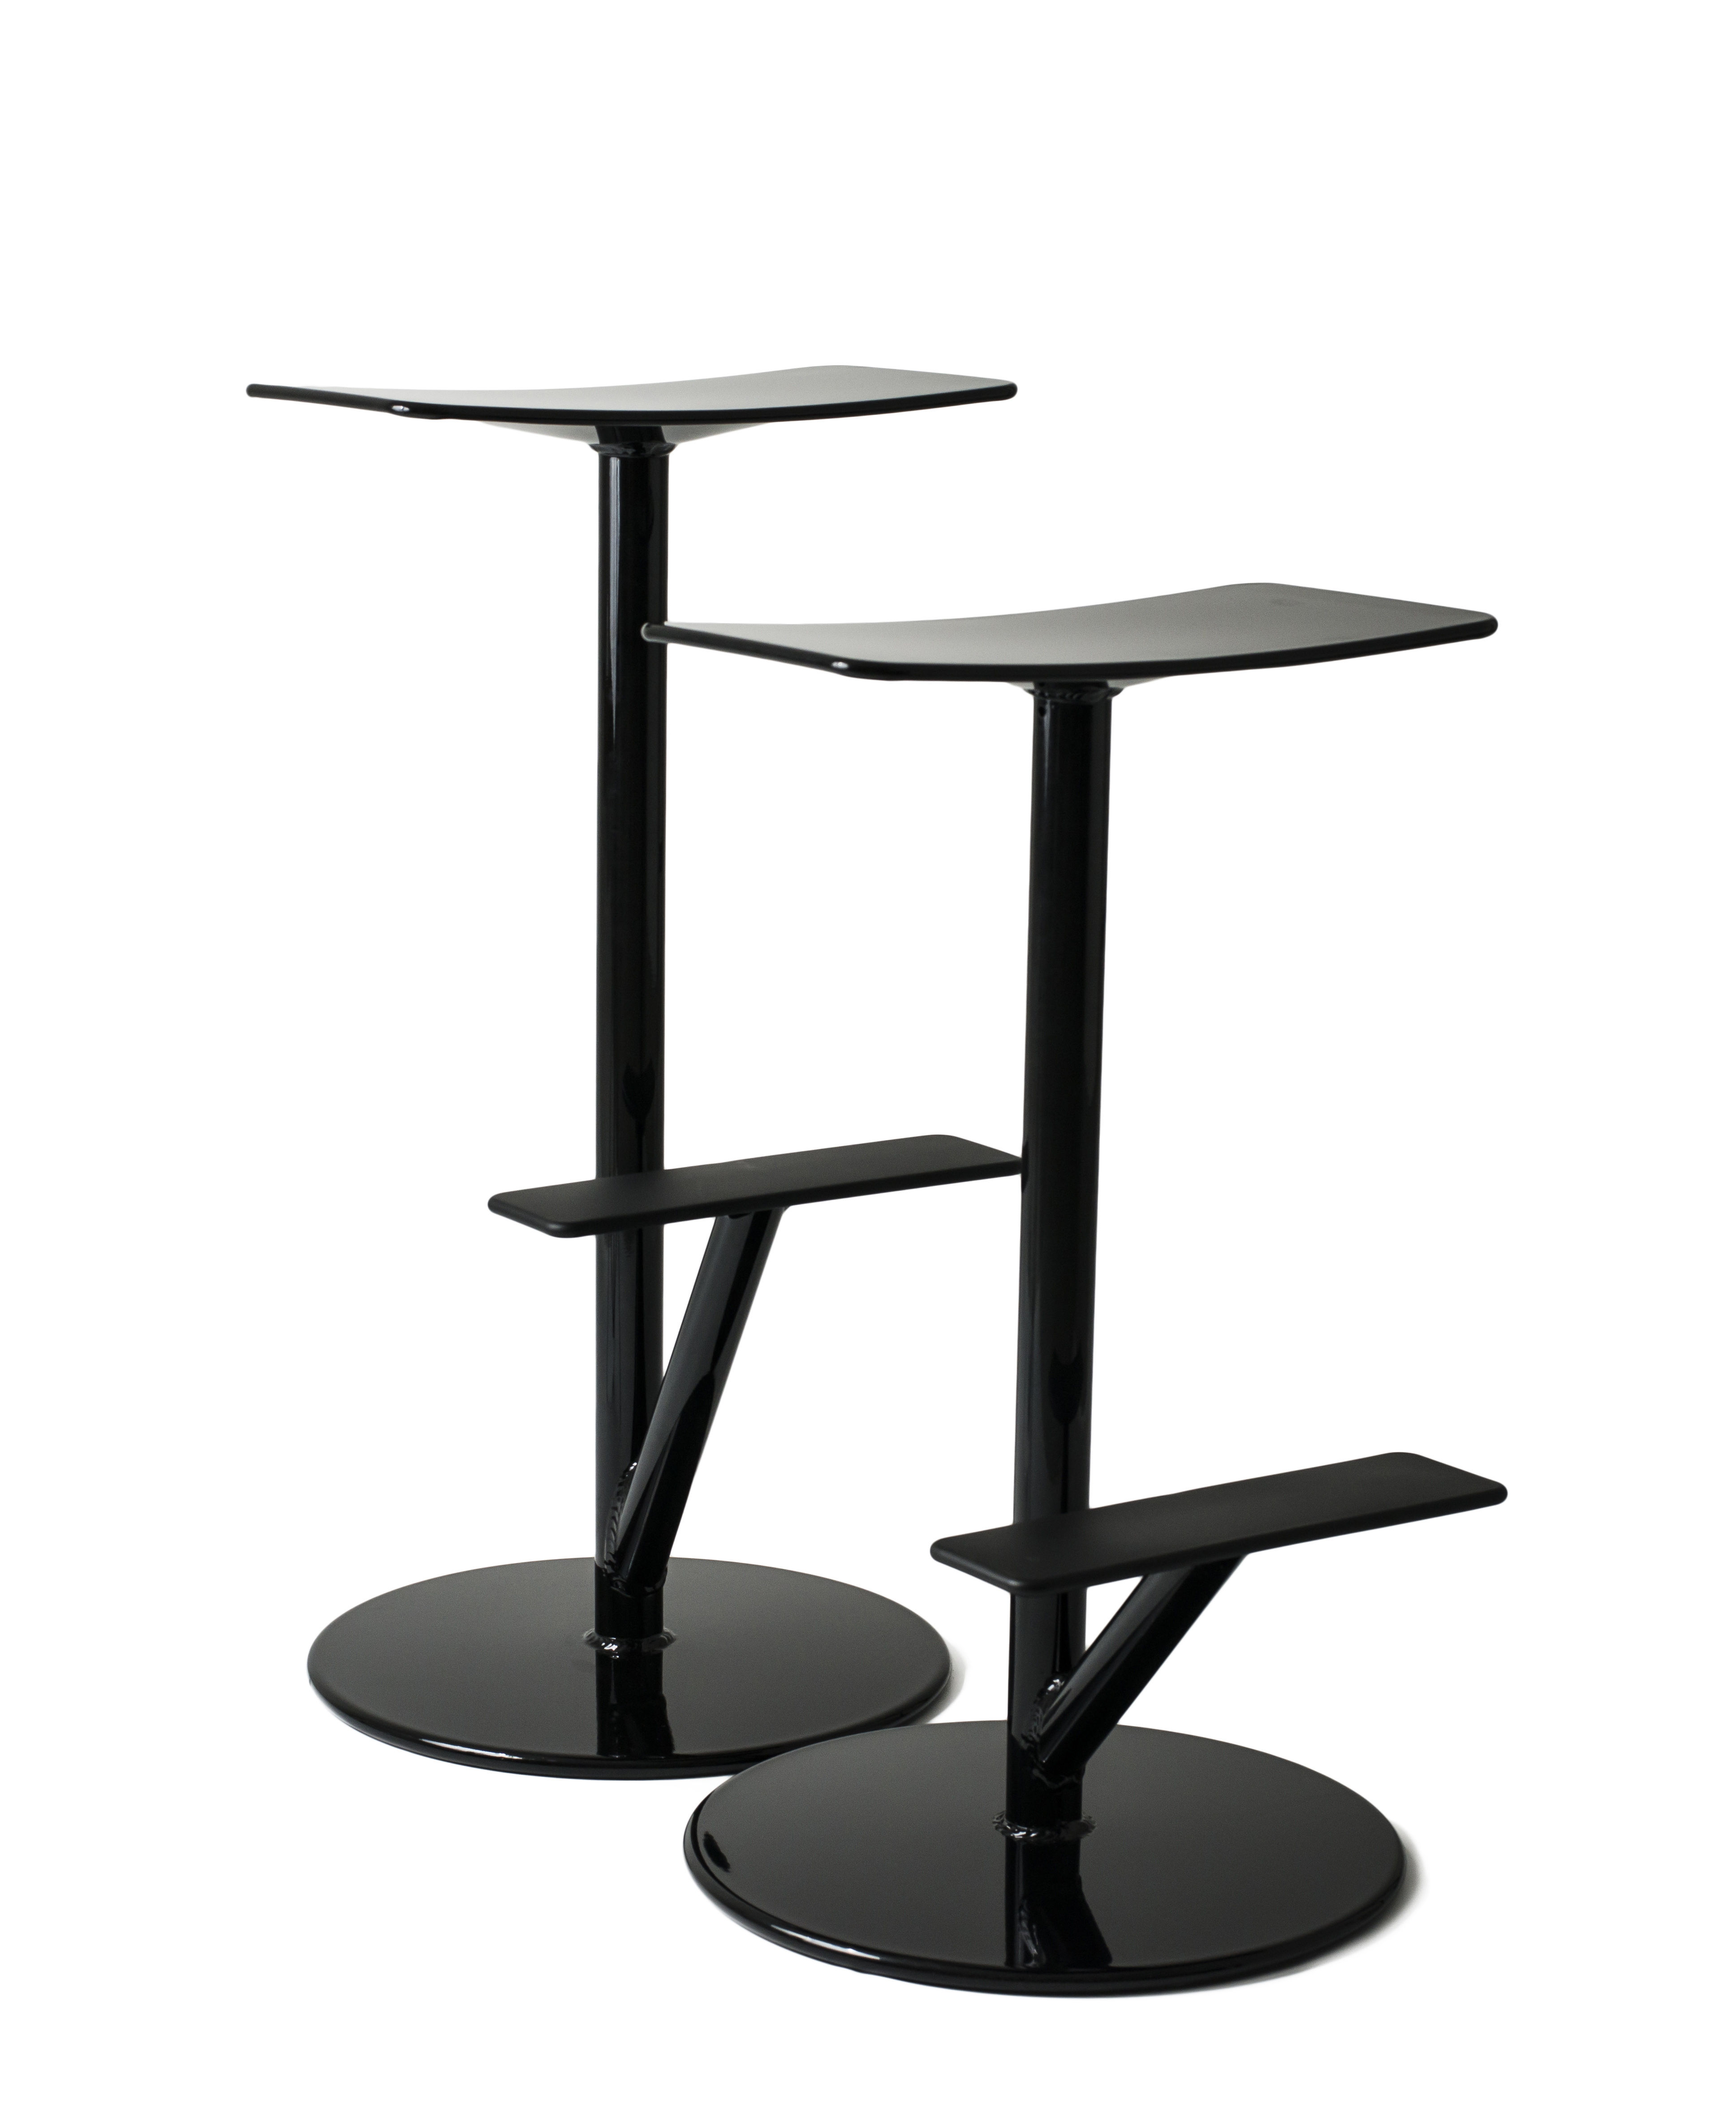 tabouret haut sequoia m tal h 65 cm noir mat magis. Black Bedroom Furniture Sets. Home Design Ideas